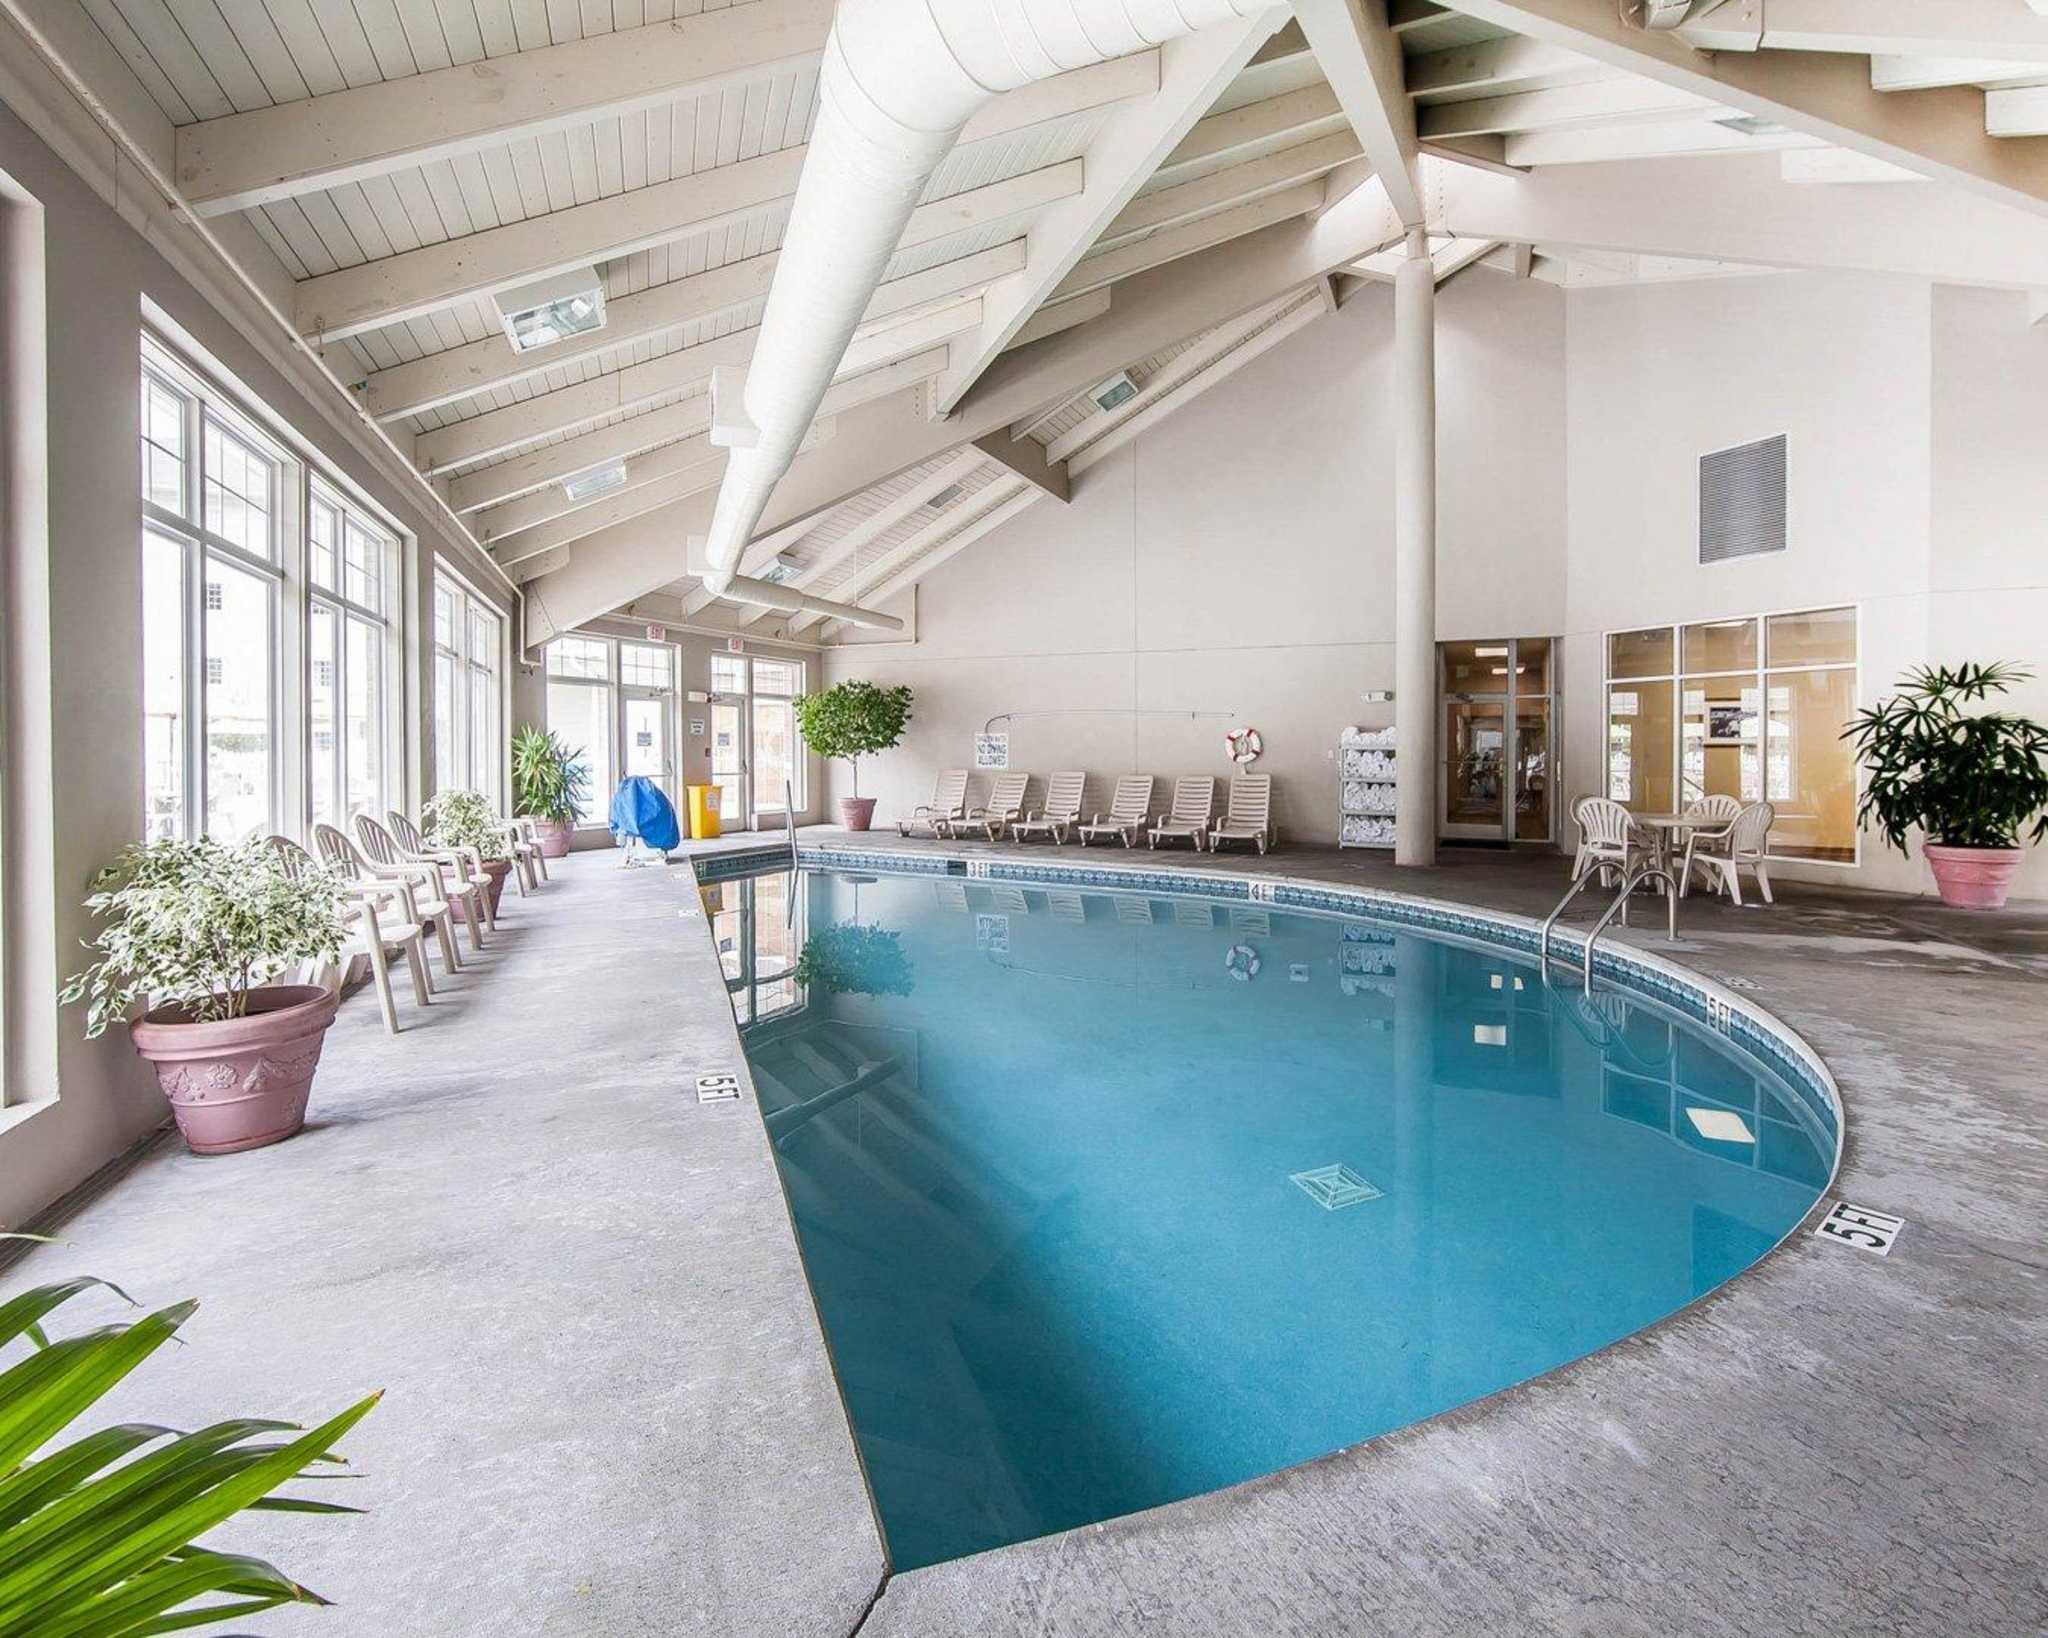 Mainstay Suites Conference Center At 410 Pine Mountain